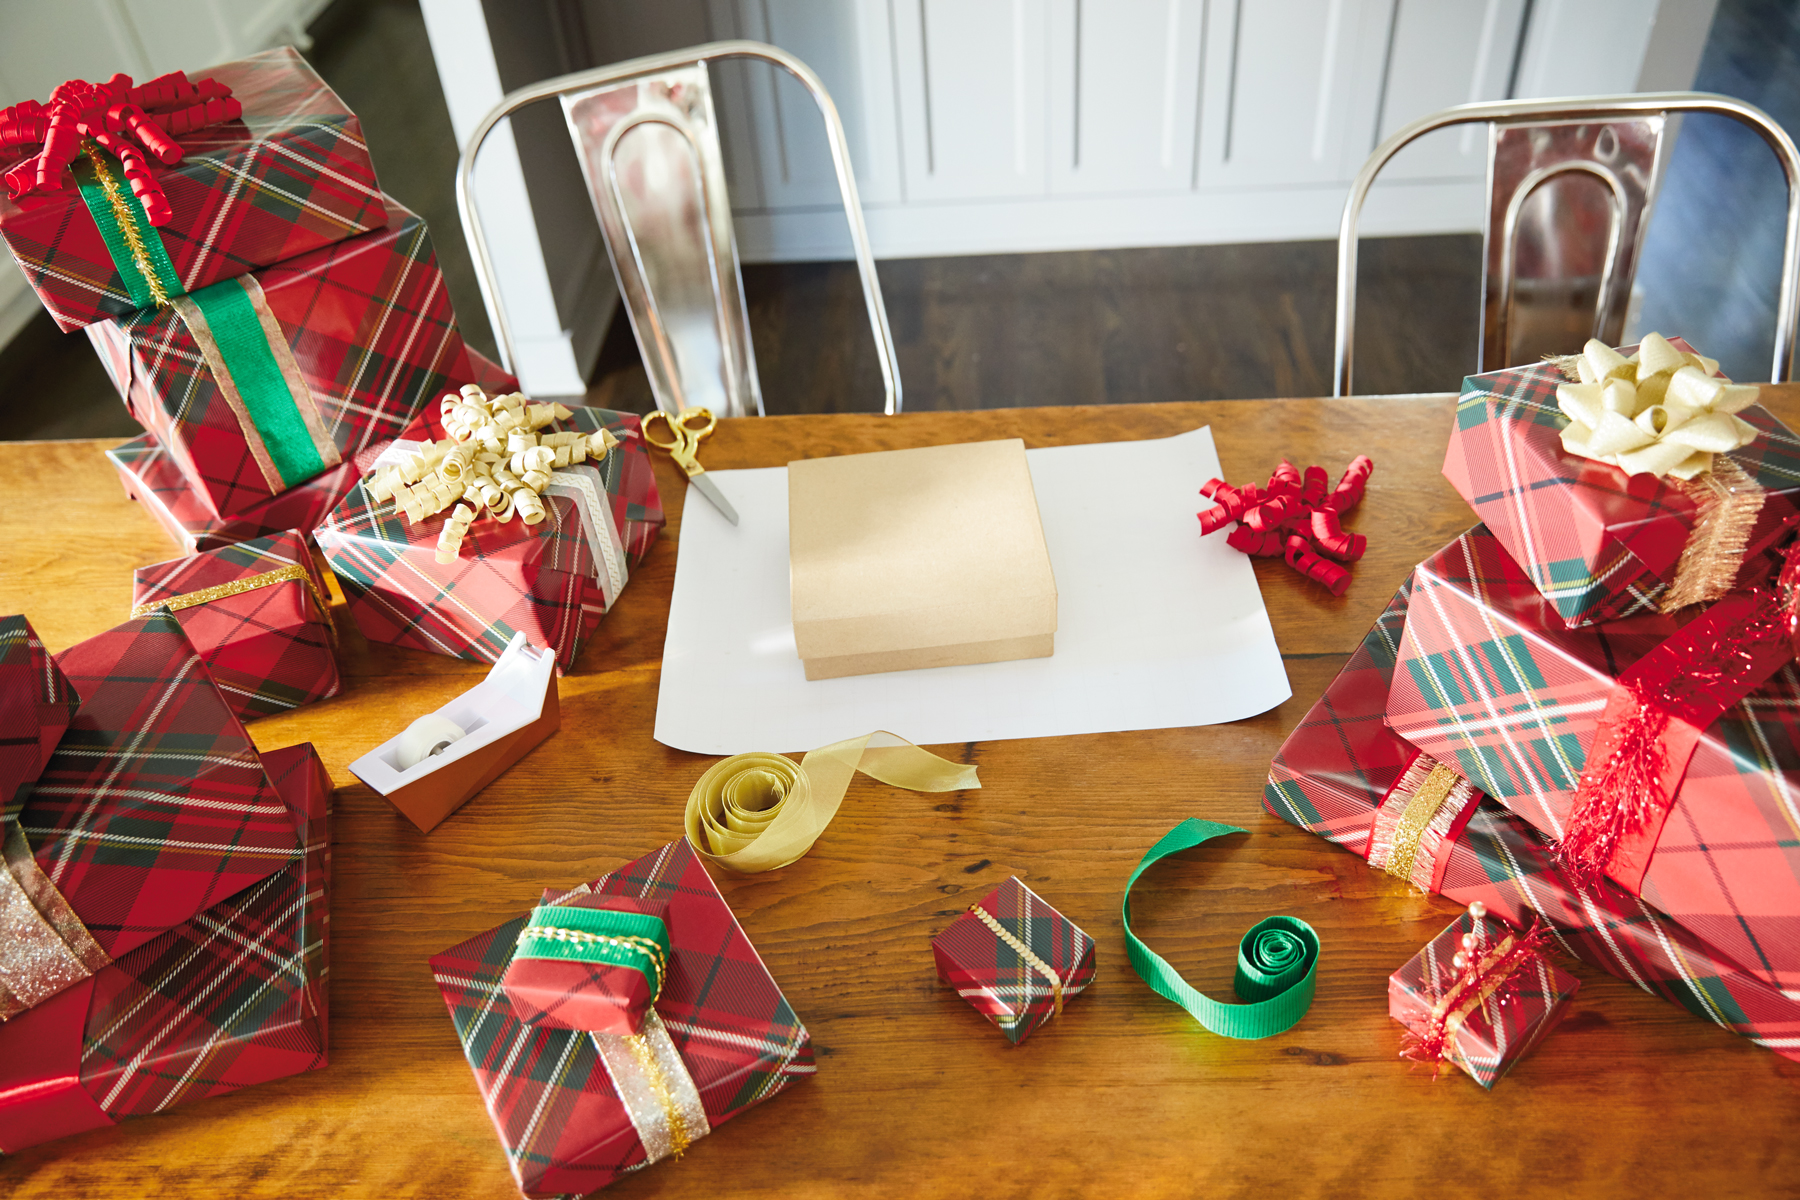 Gift wrapping mistakes and solutions #2: Set Up Your Space